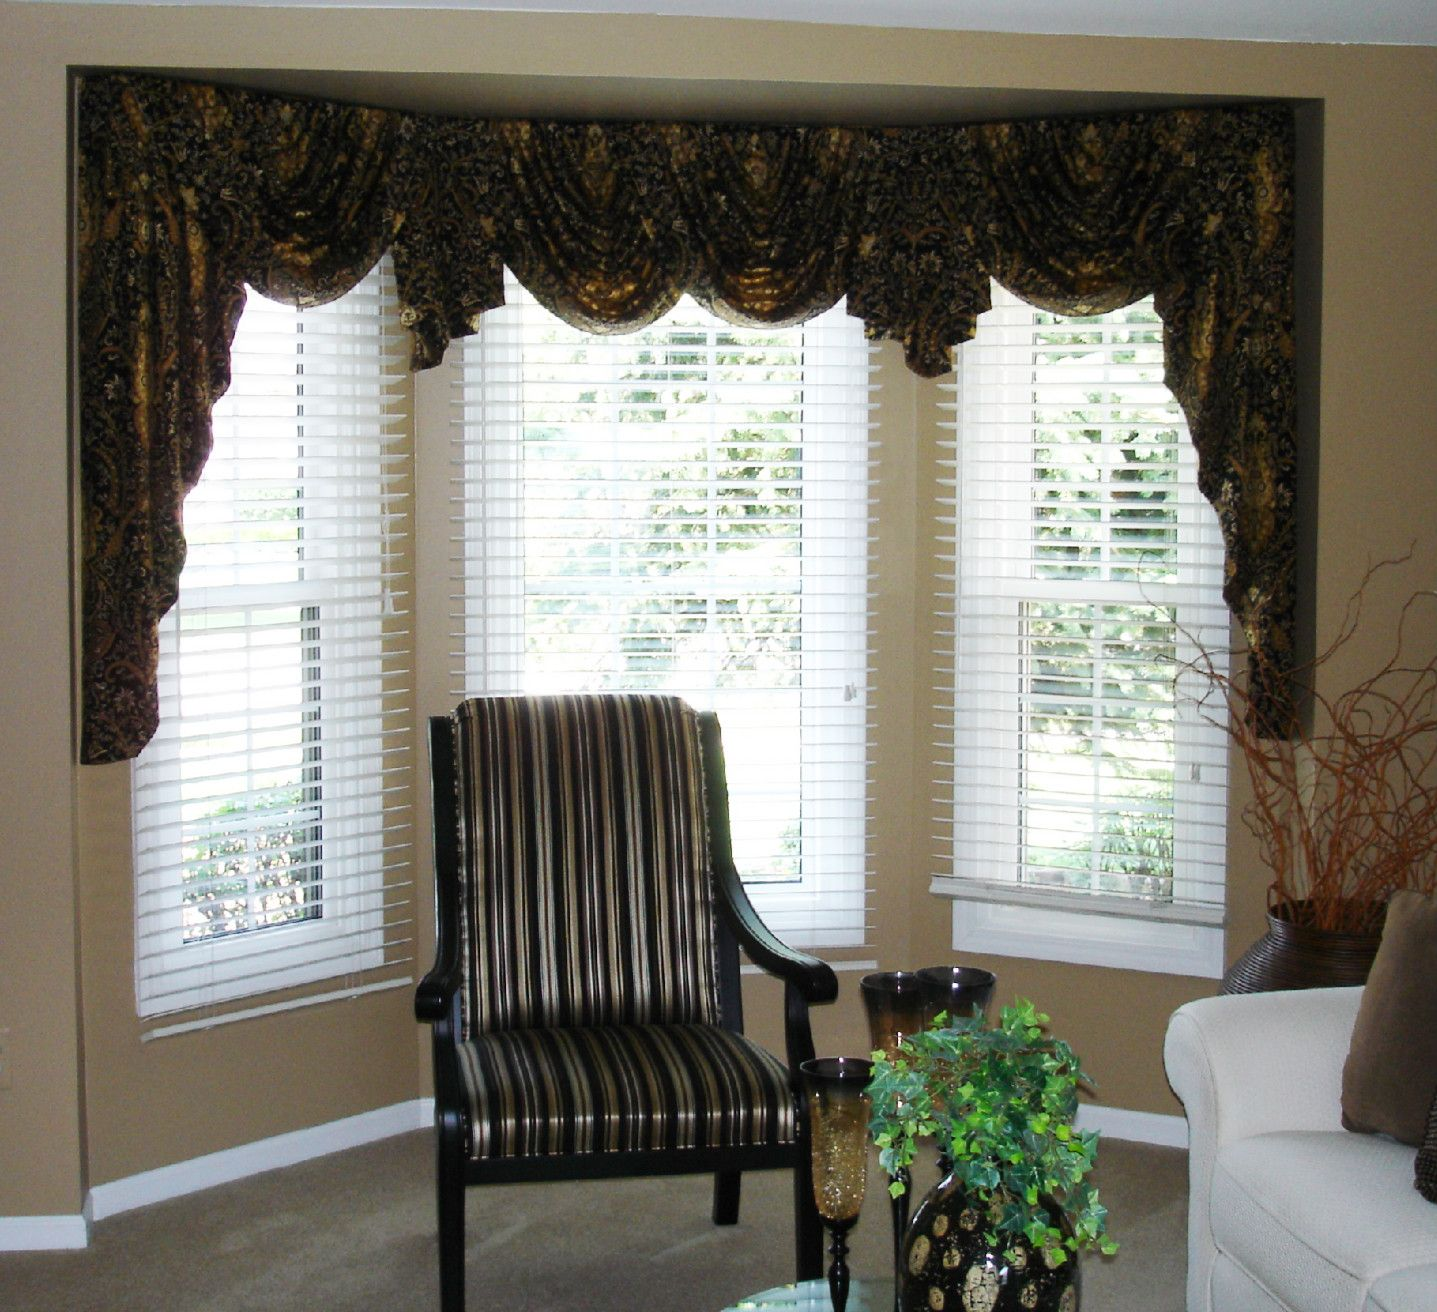 Bay window curtain ideas living room - Valances For Living Room Creating Comfort Valances For Bay Windows In Living Room Valances For Bay Windows In Living Room More Window Treatments Ideas